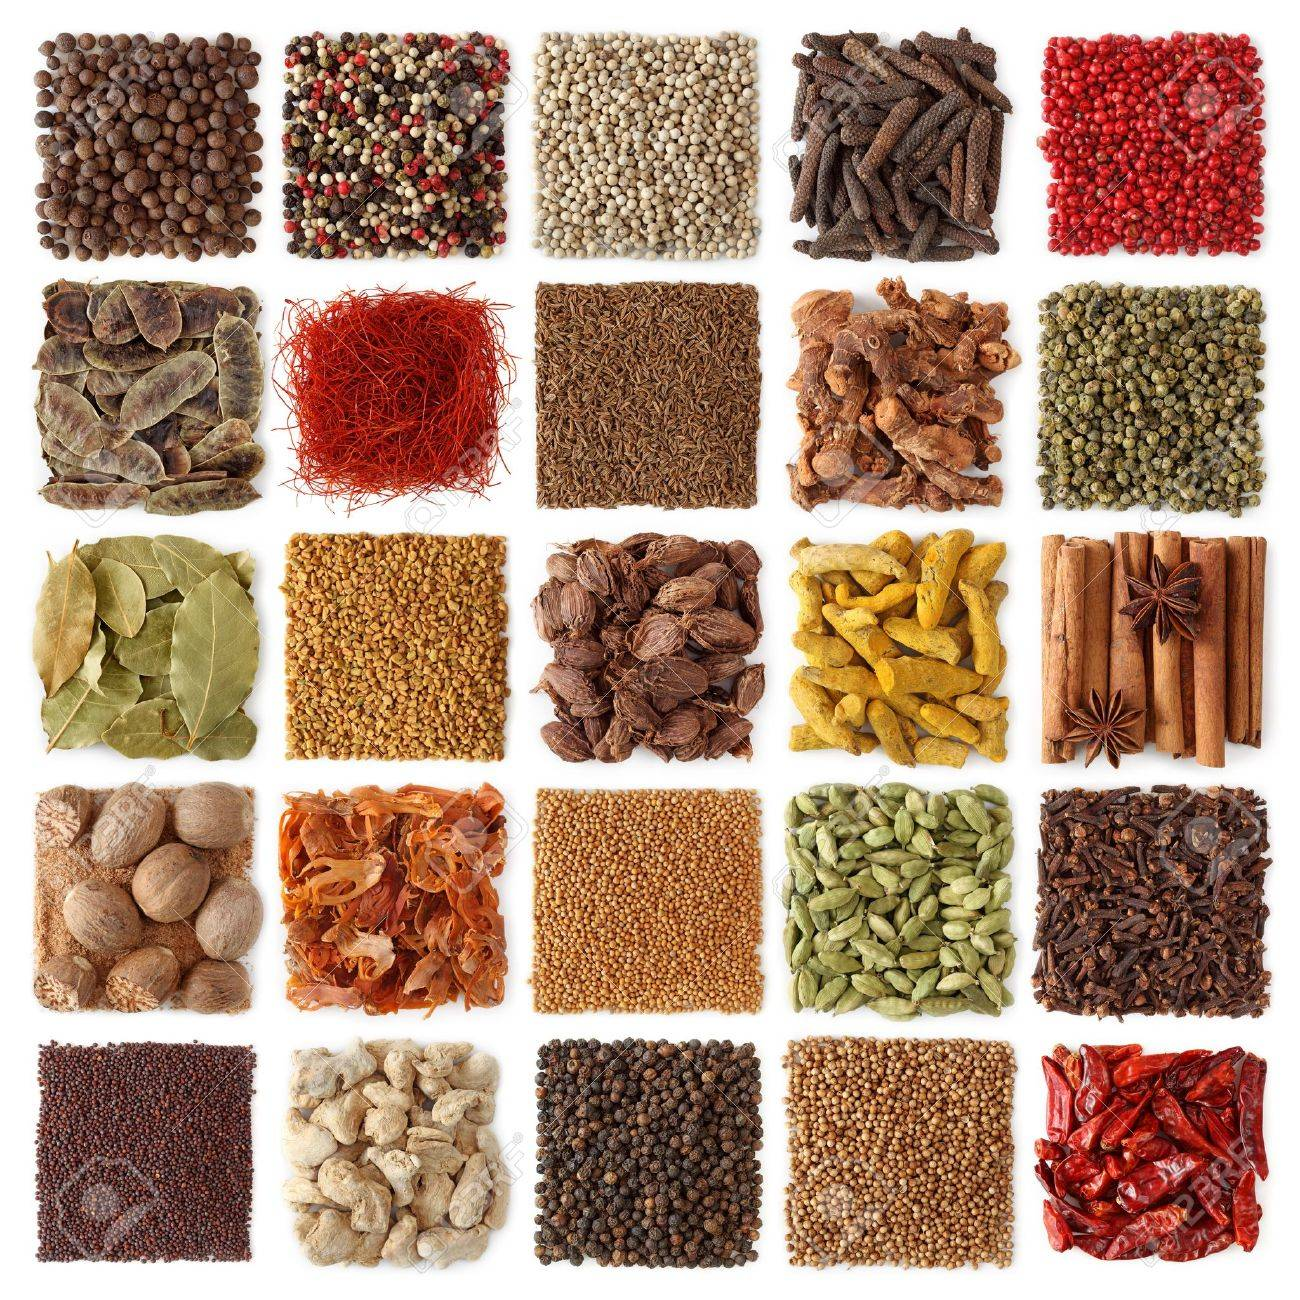 Indian spices collection isolated on white background - 8394661